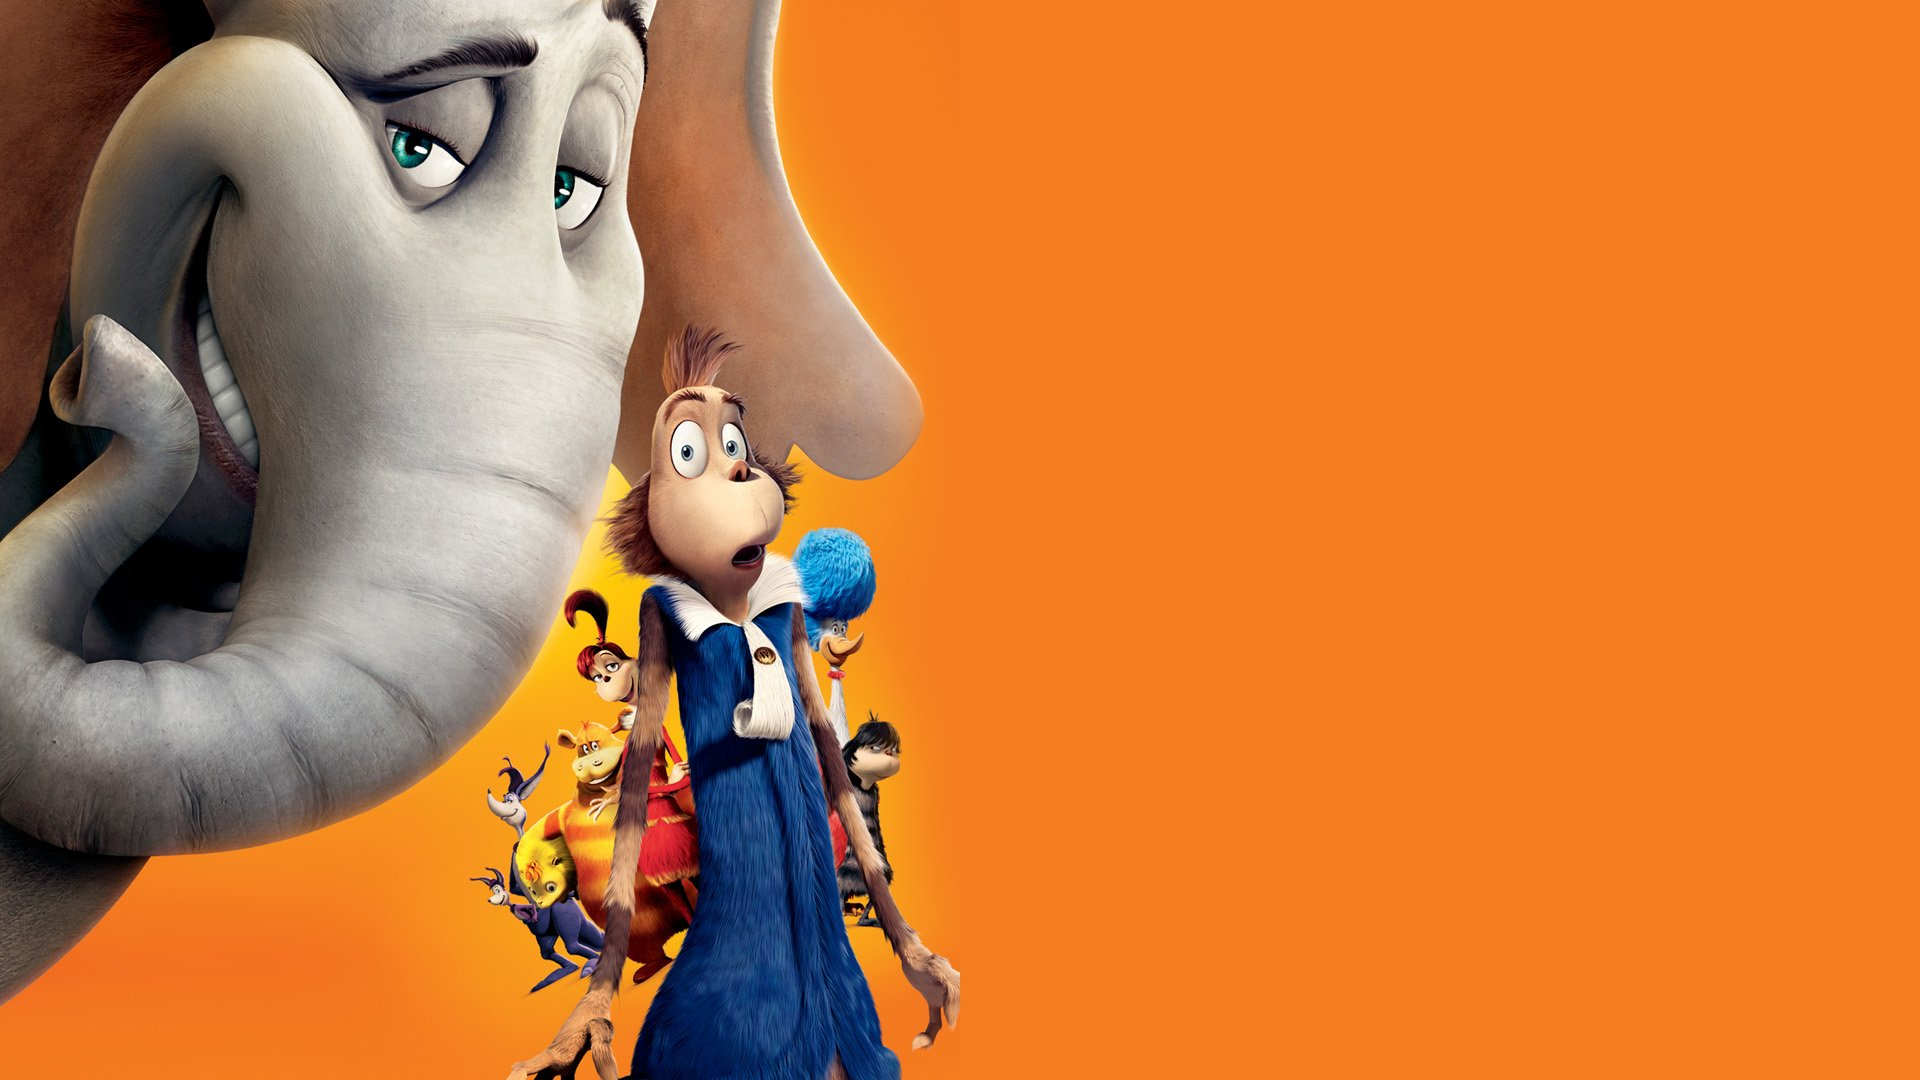 Horton Hears a Who HD Wallpaper Background Image 1920x1080 1920x1080